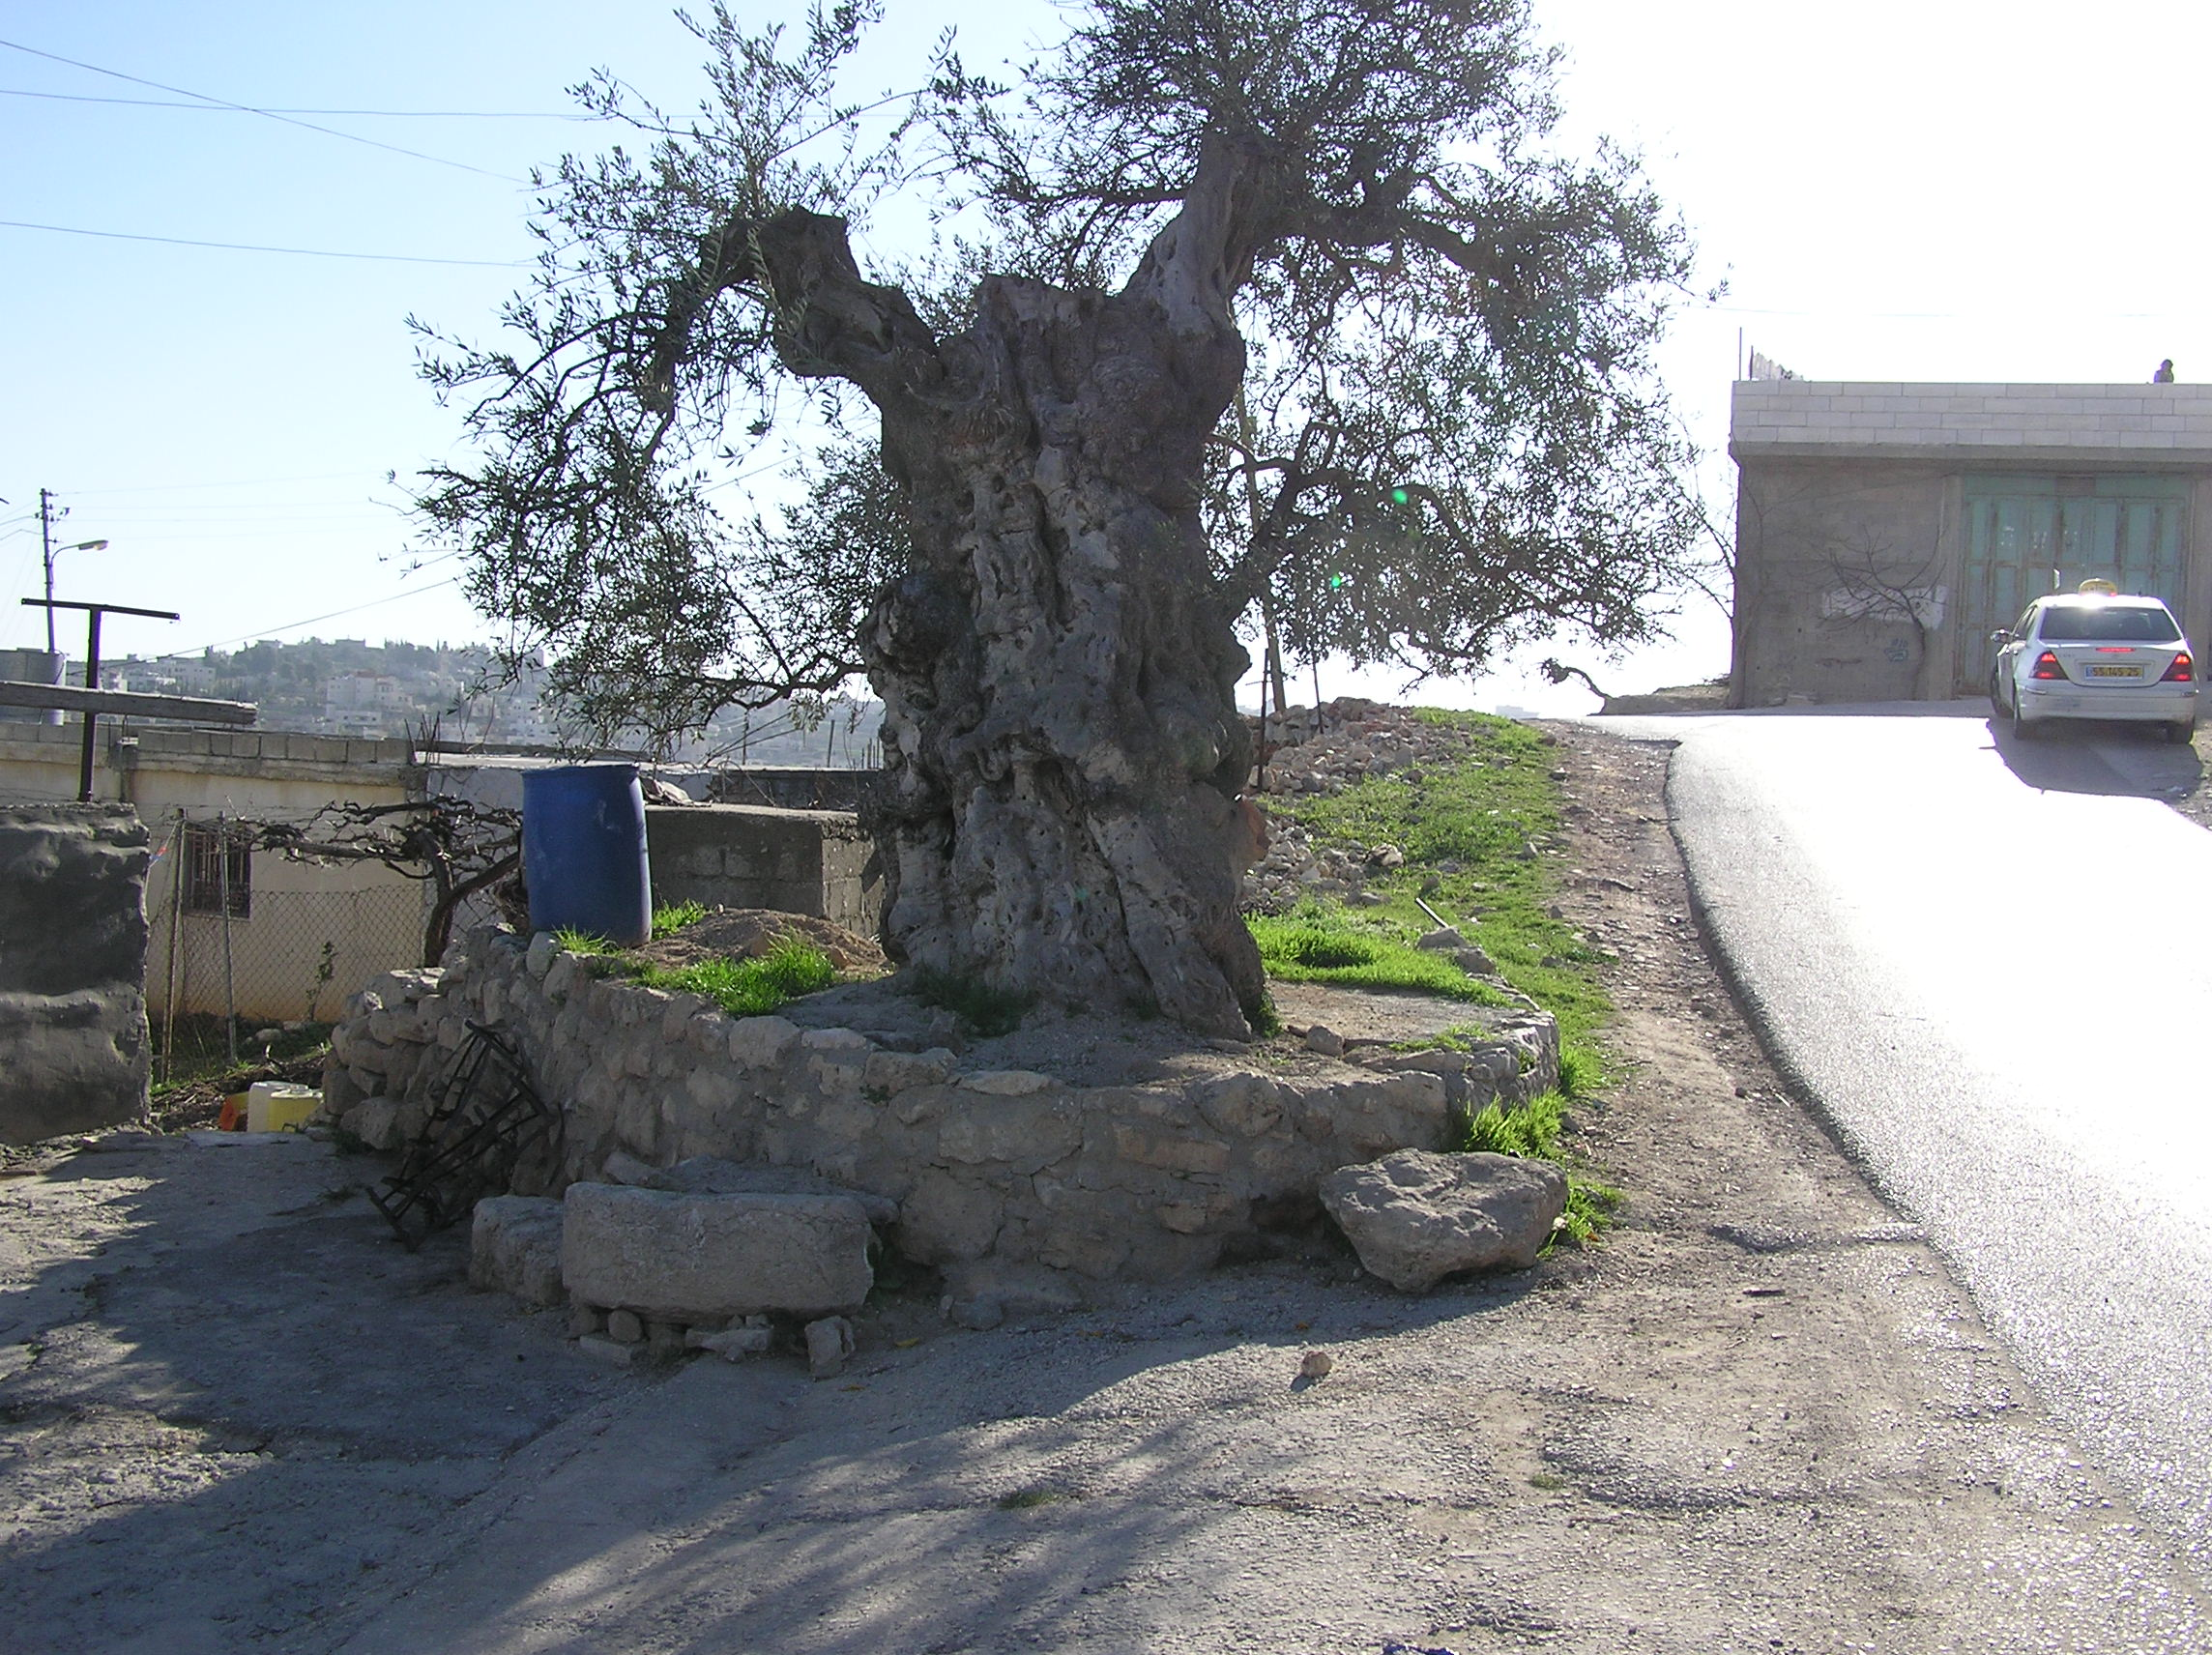 Halhul - حلحول : A 3000 Year Old Olive Tree In Halhul